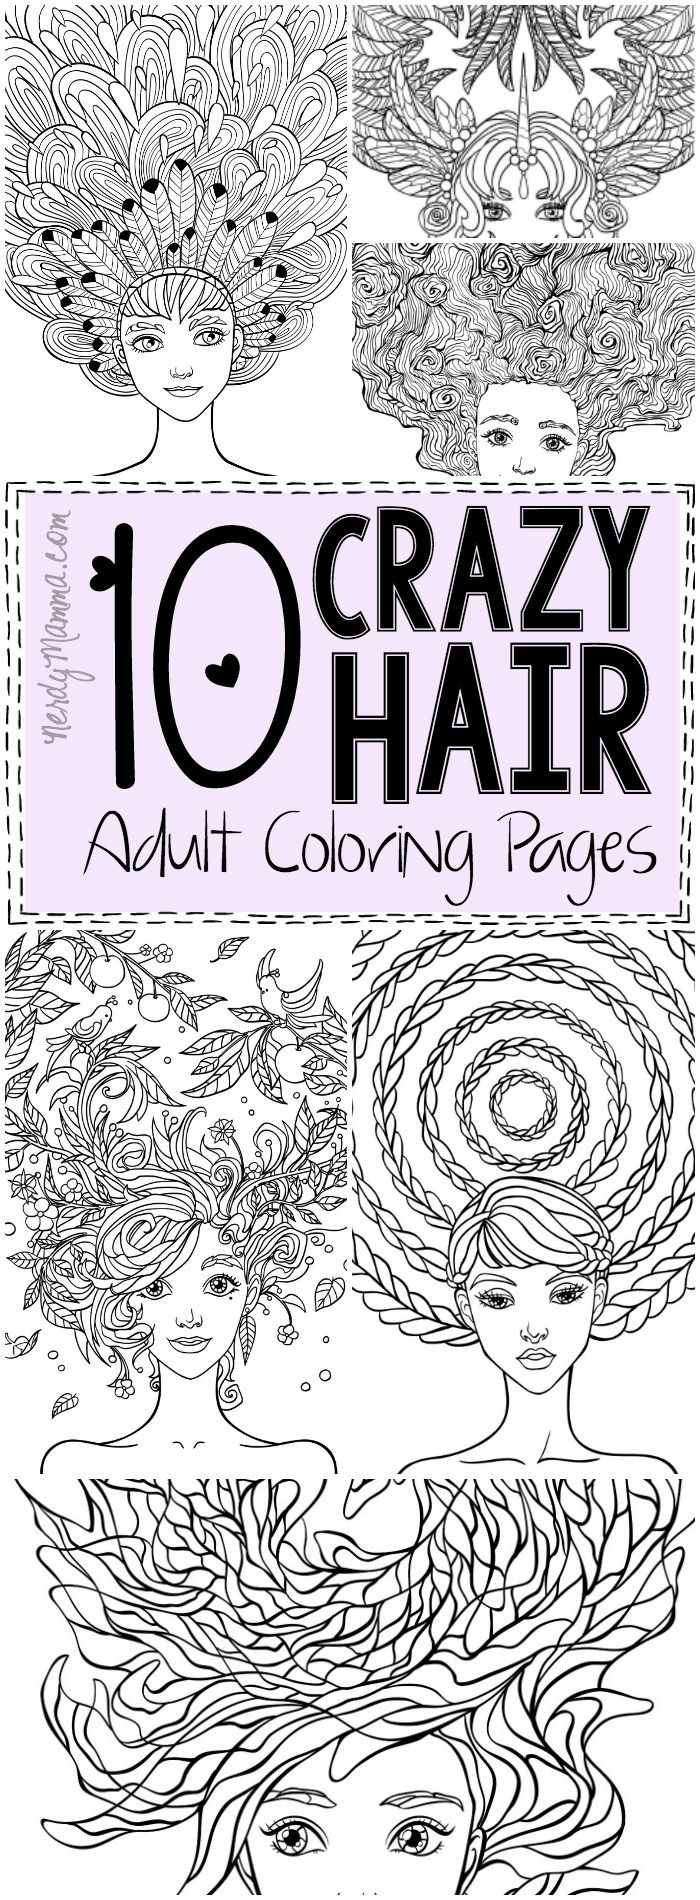 8 march coloring pages - 10 Crazy Hair Adult Coloring Pages